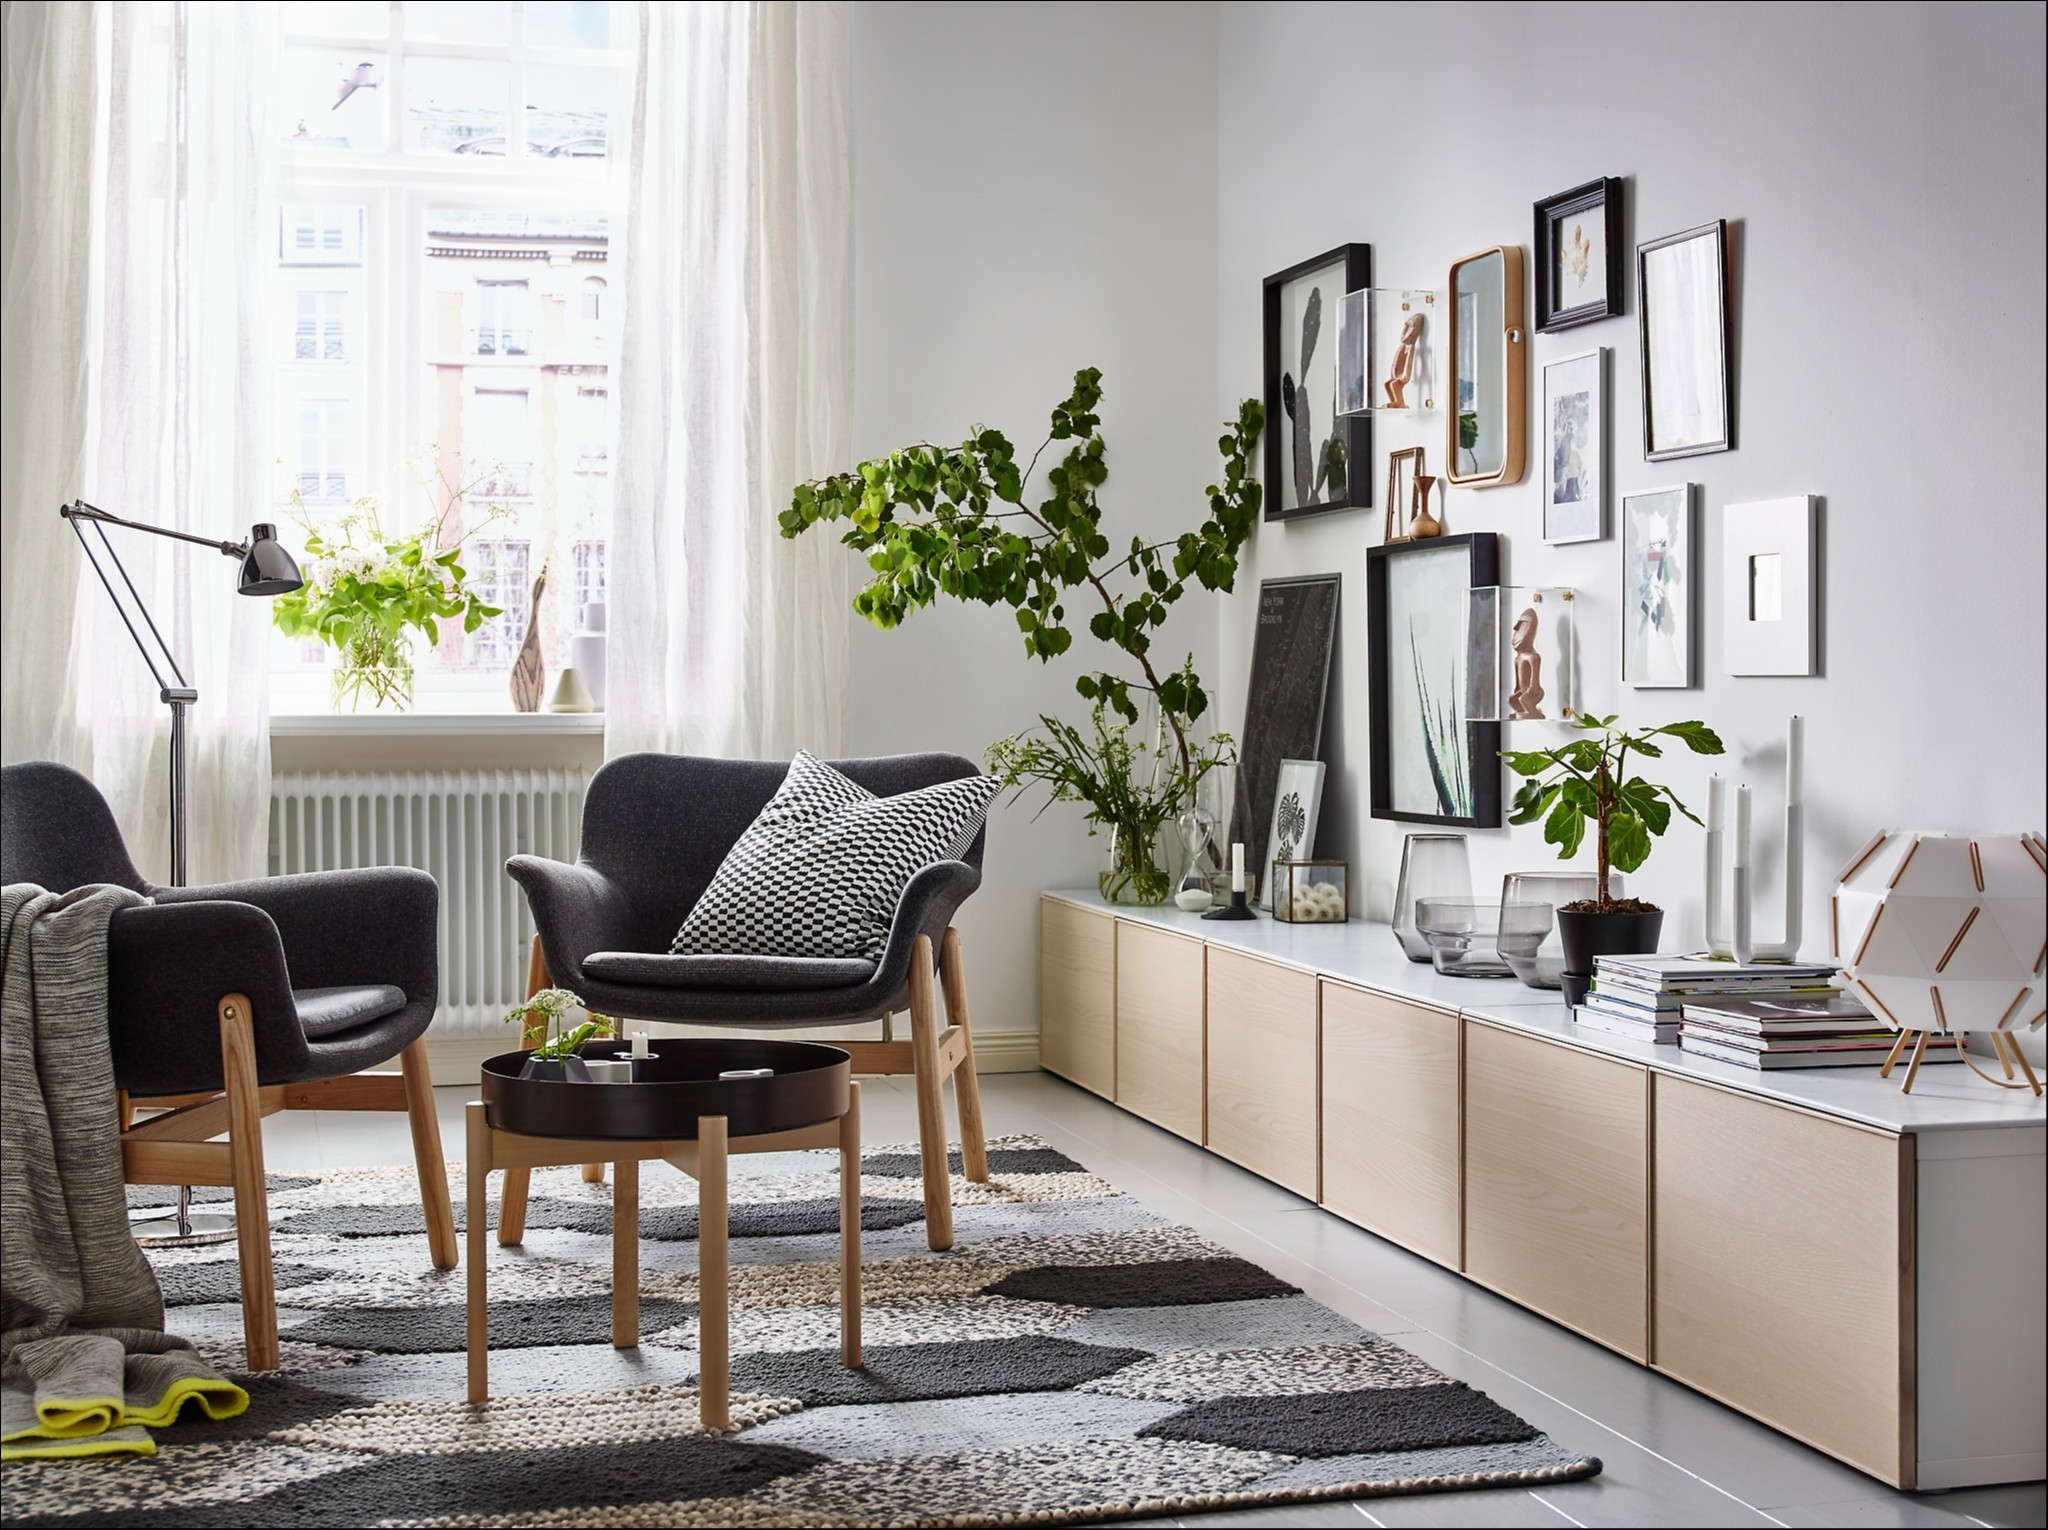 Magnificent Best Ikea Living Room Designs 2019 Home Design with regard to Living Room Sets Ikea